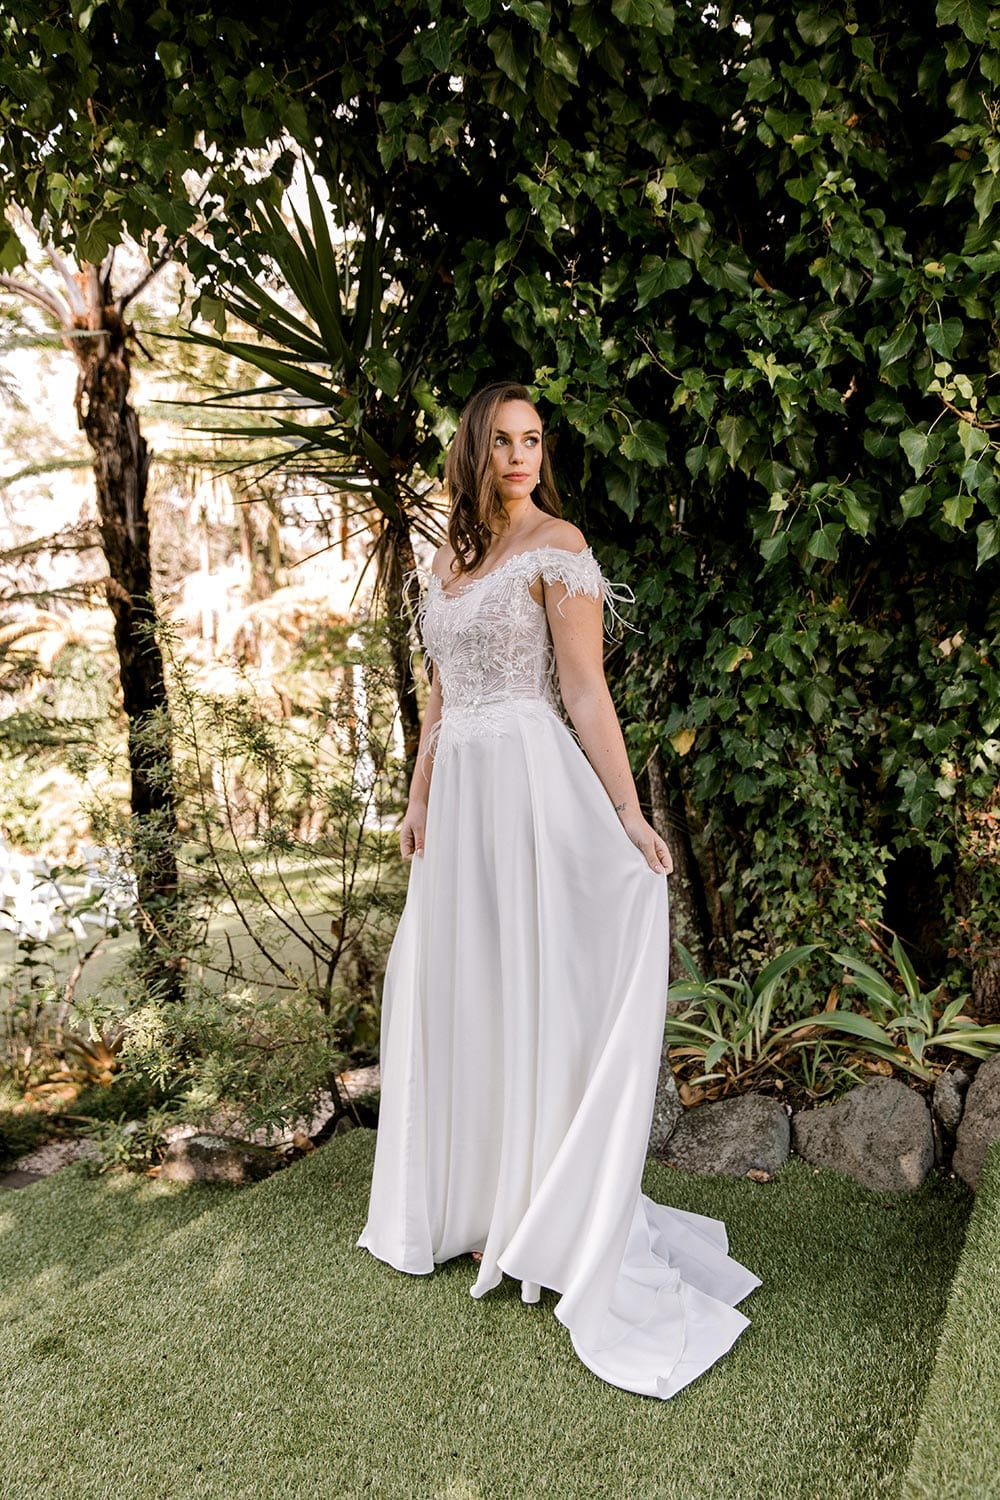 Genevive Wedding Dress from Vinka Design. The soft off-the-shoulder sleeves & semi-sheer structured bodice with hand-appliqued lace and a soft satin skirt make this a romantic & dreamy wedding dress. Full length portrait with train to the side, photographed at Tui Hills.